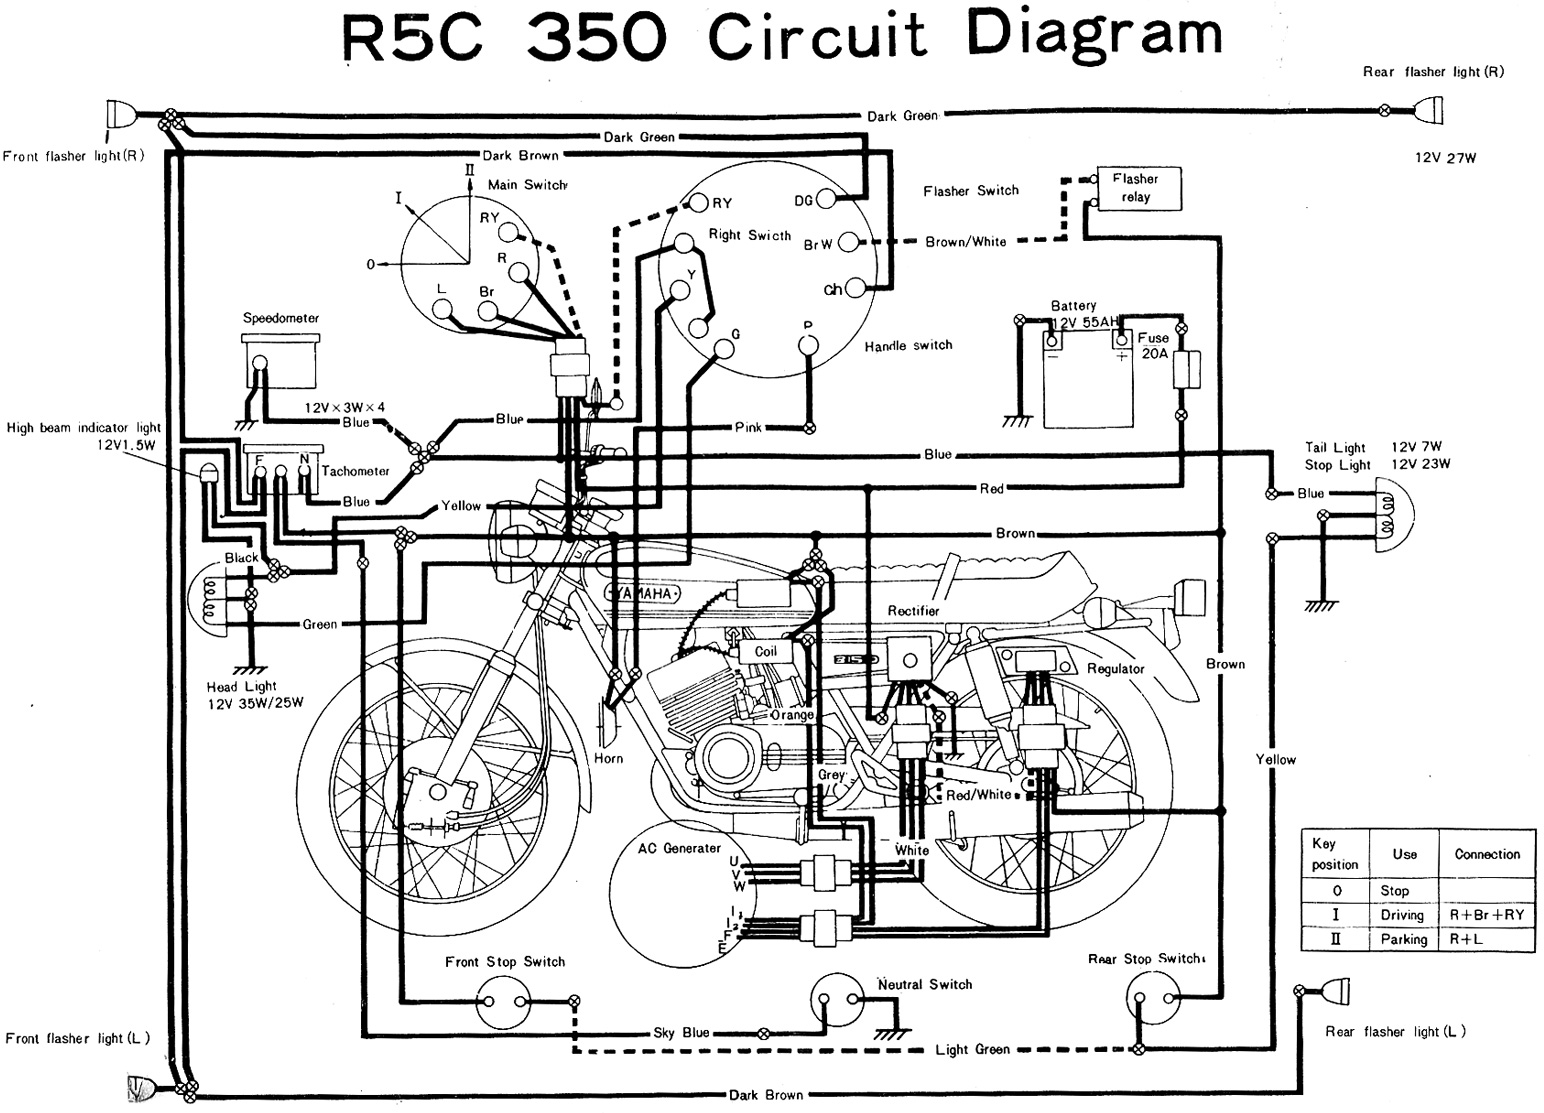 Yamaha RD350 R5C Wiring Diagram motorcycle wiring diagrams evan fell motorcycle worksevan fell Basic Motorcycle Diagram at bakdesigns.co